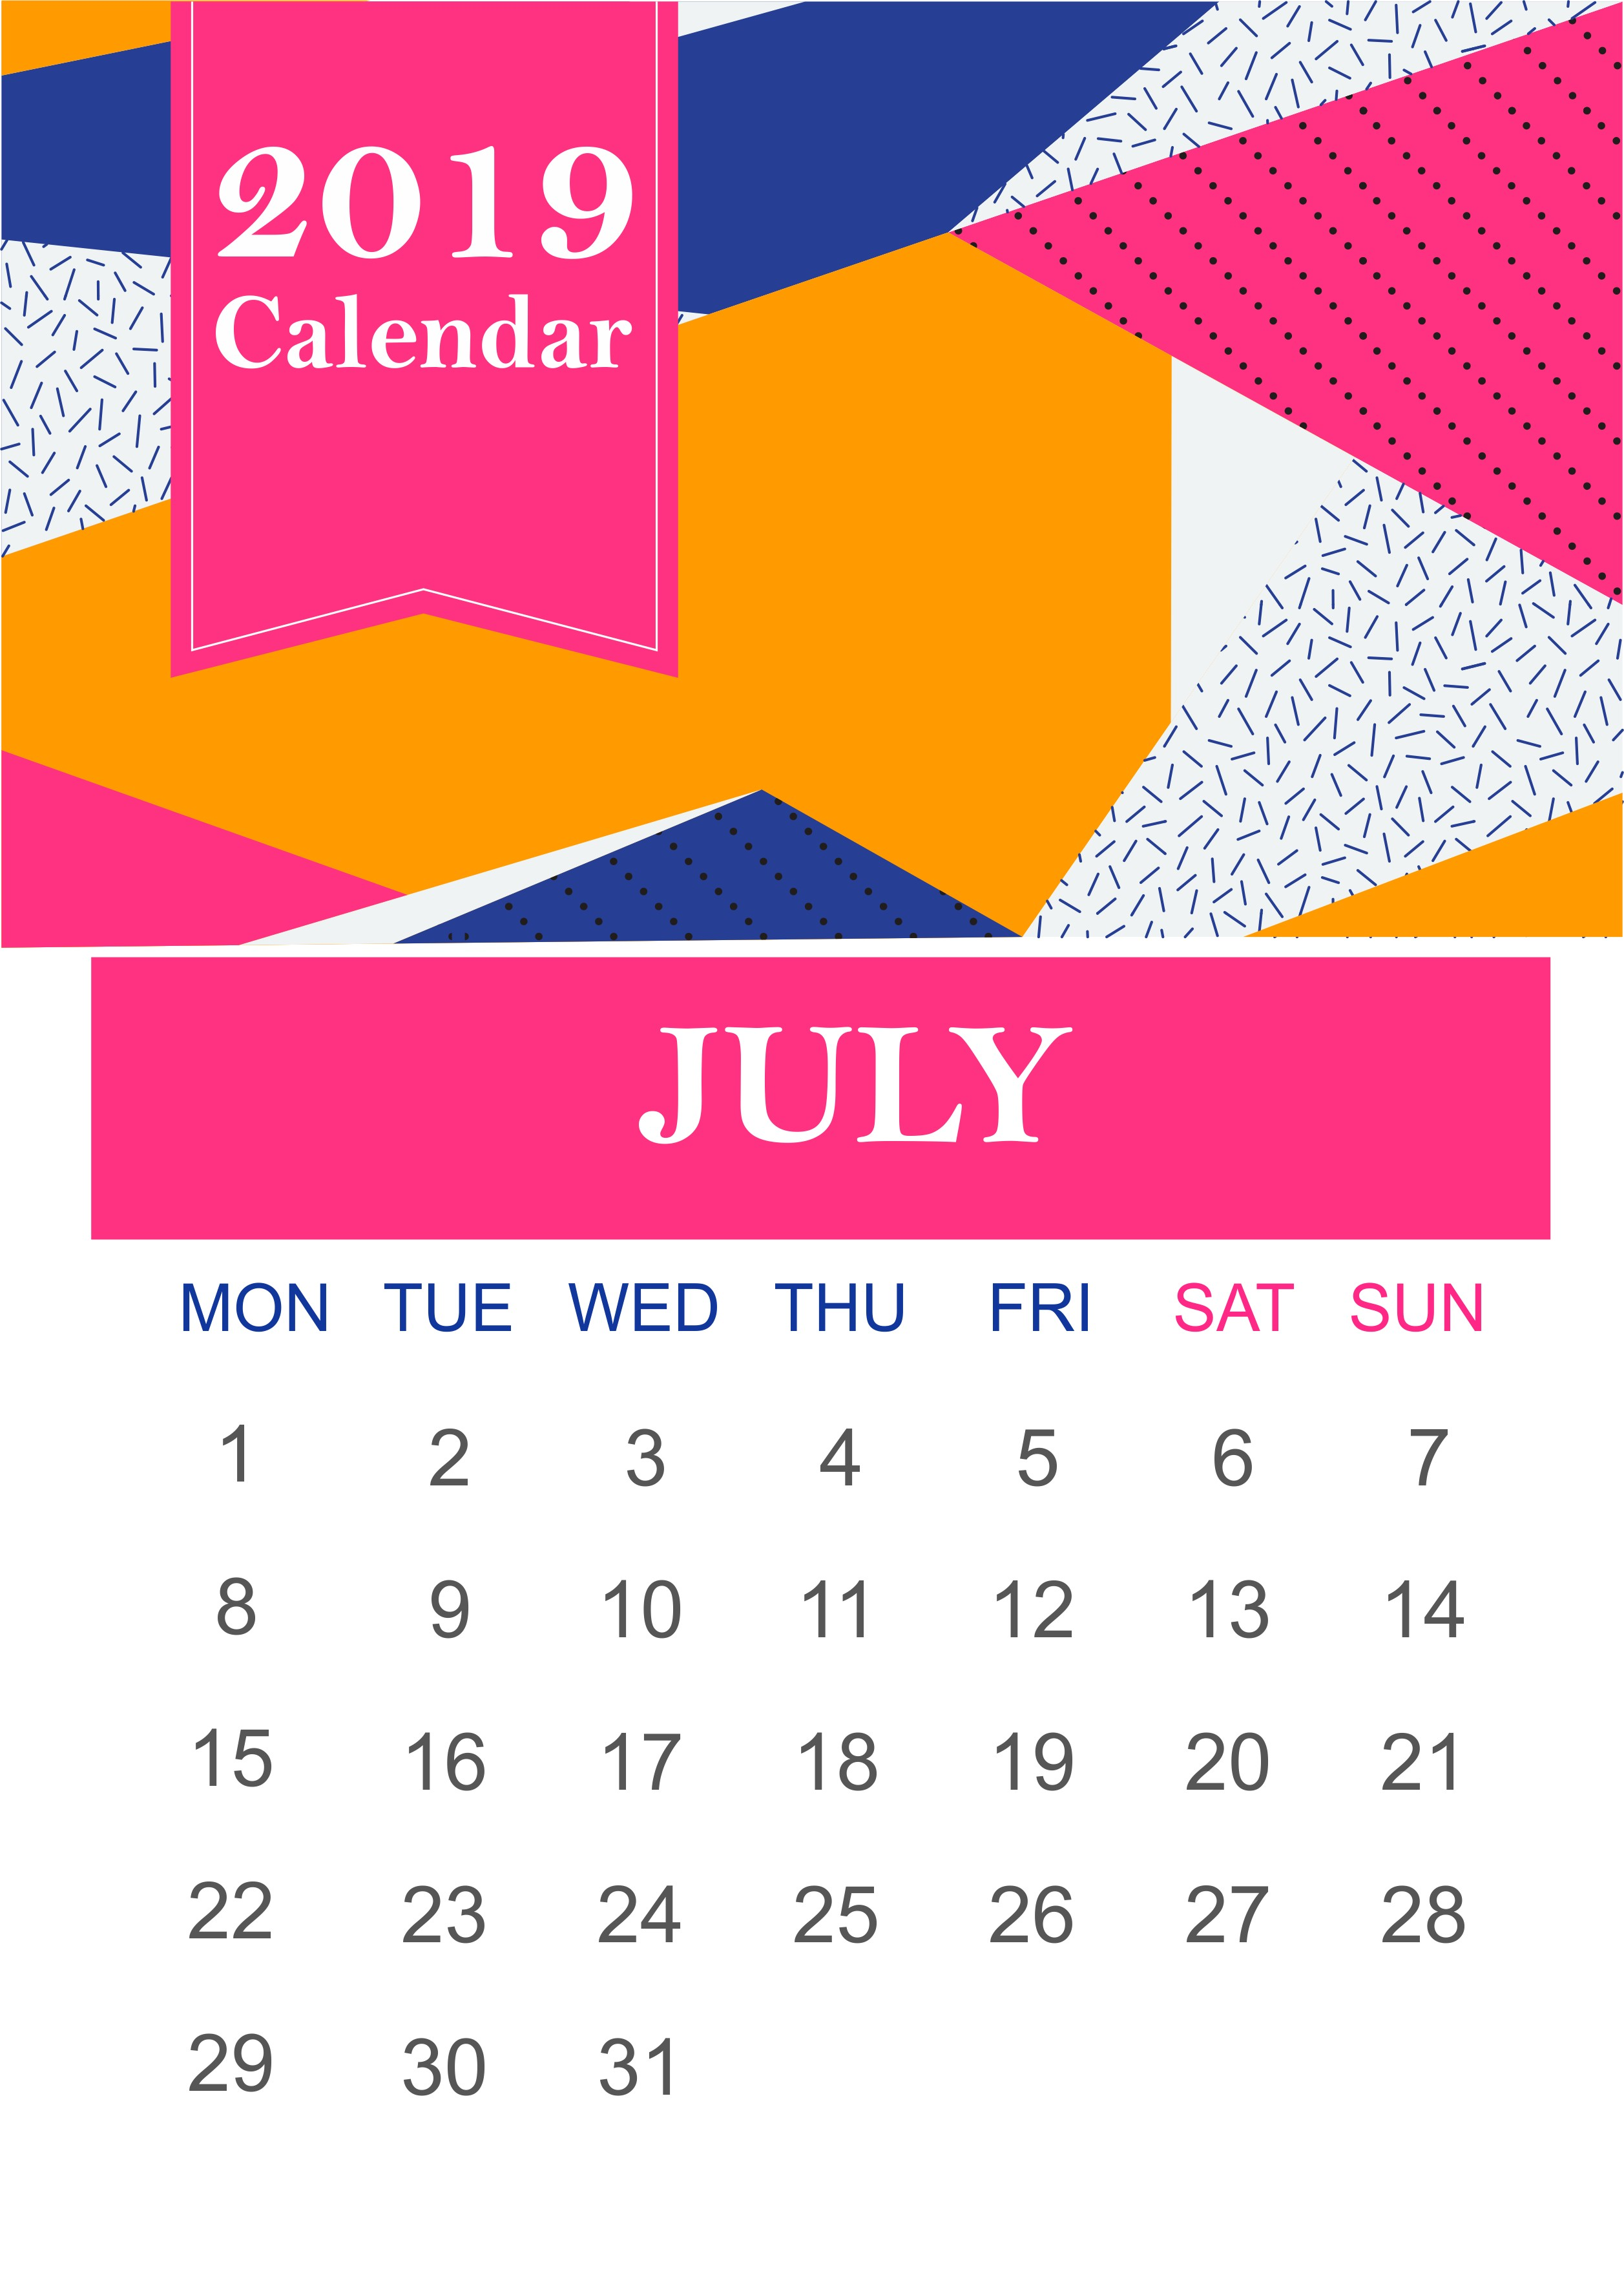 July 2019 Wall Calendar july julycalendar july2019